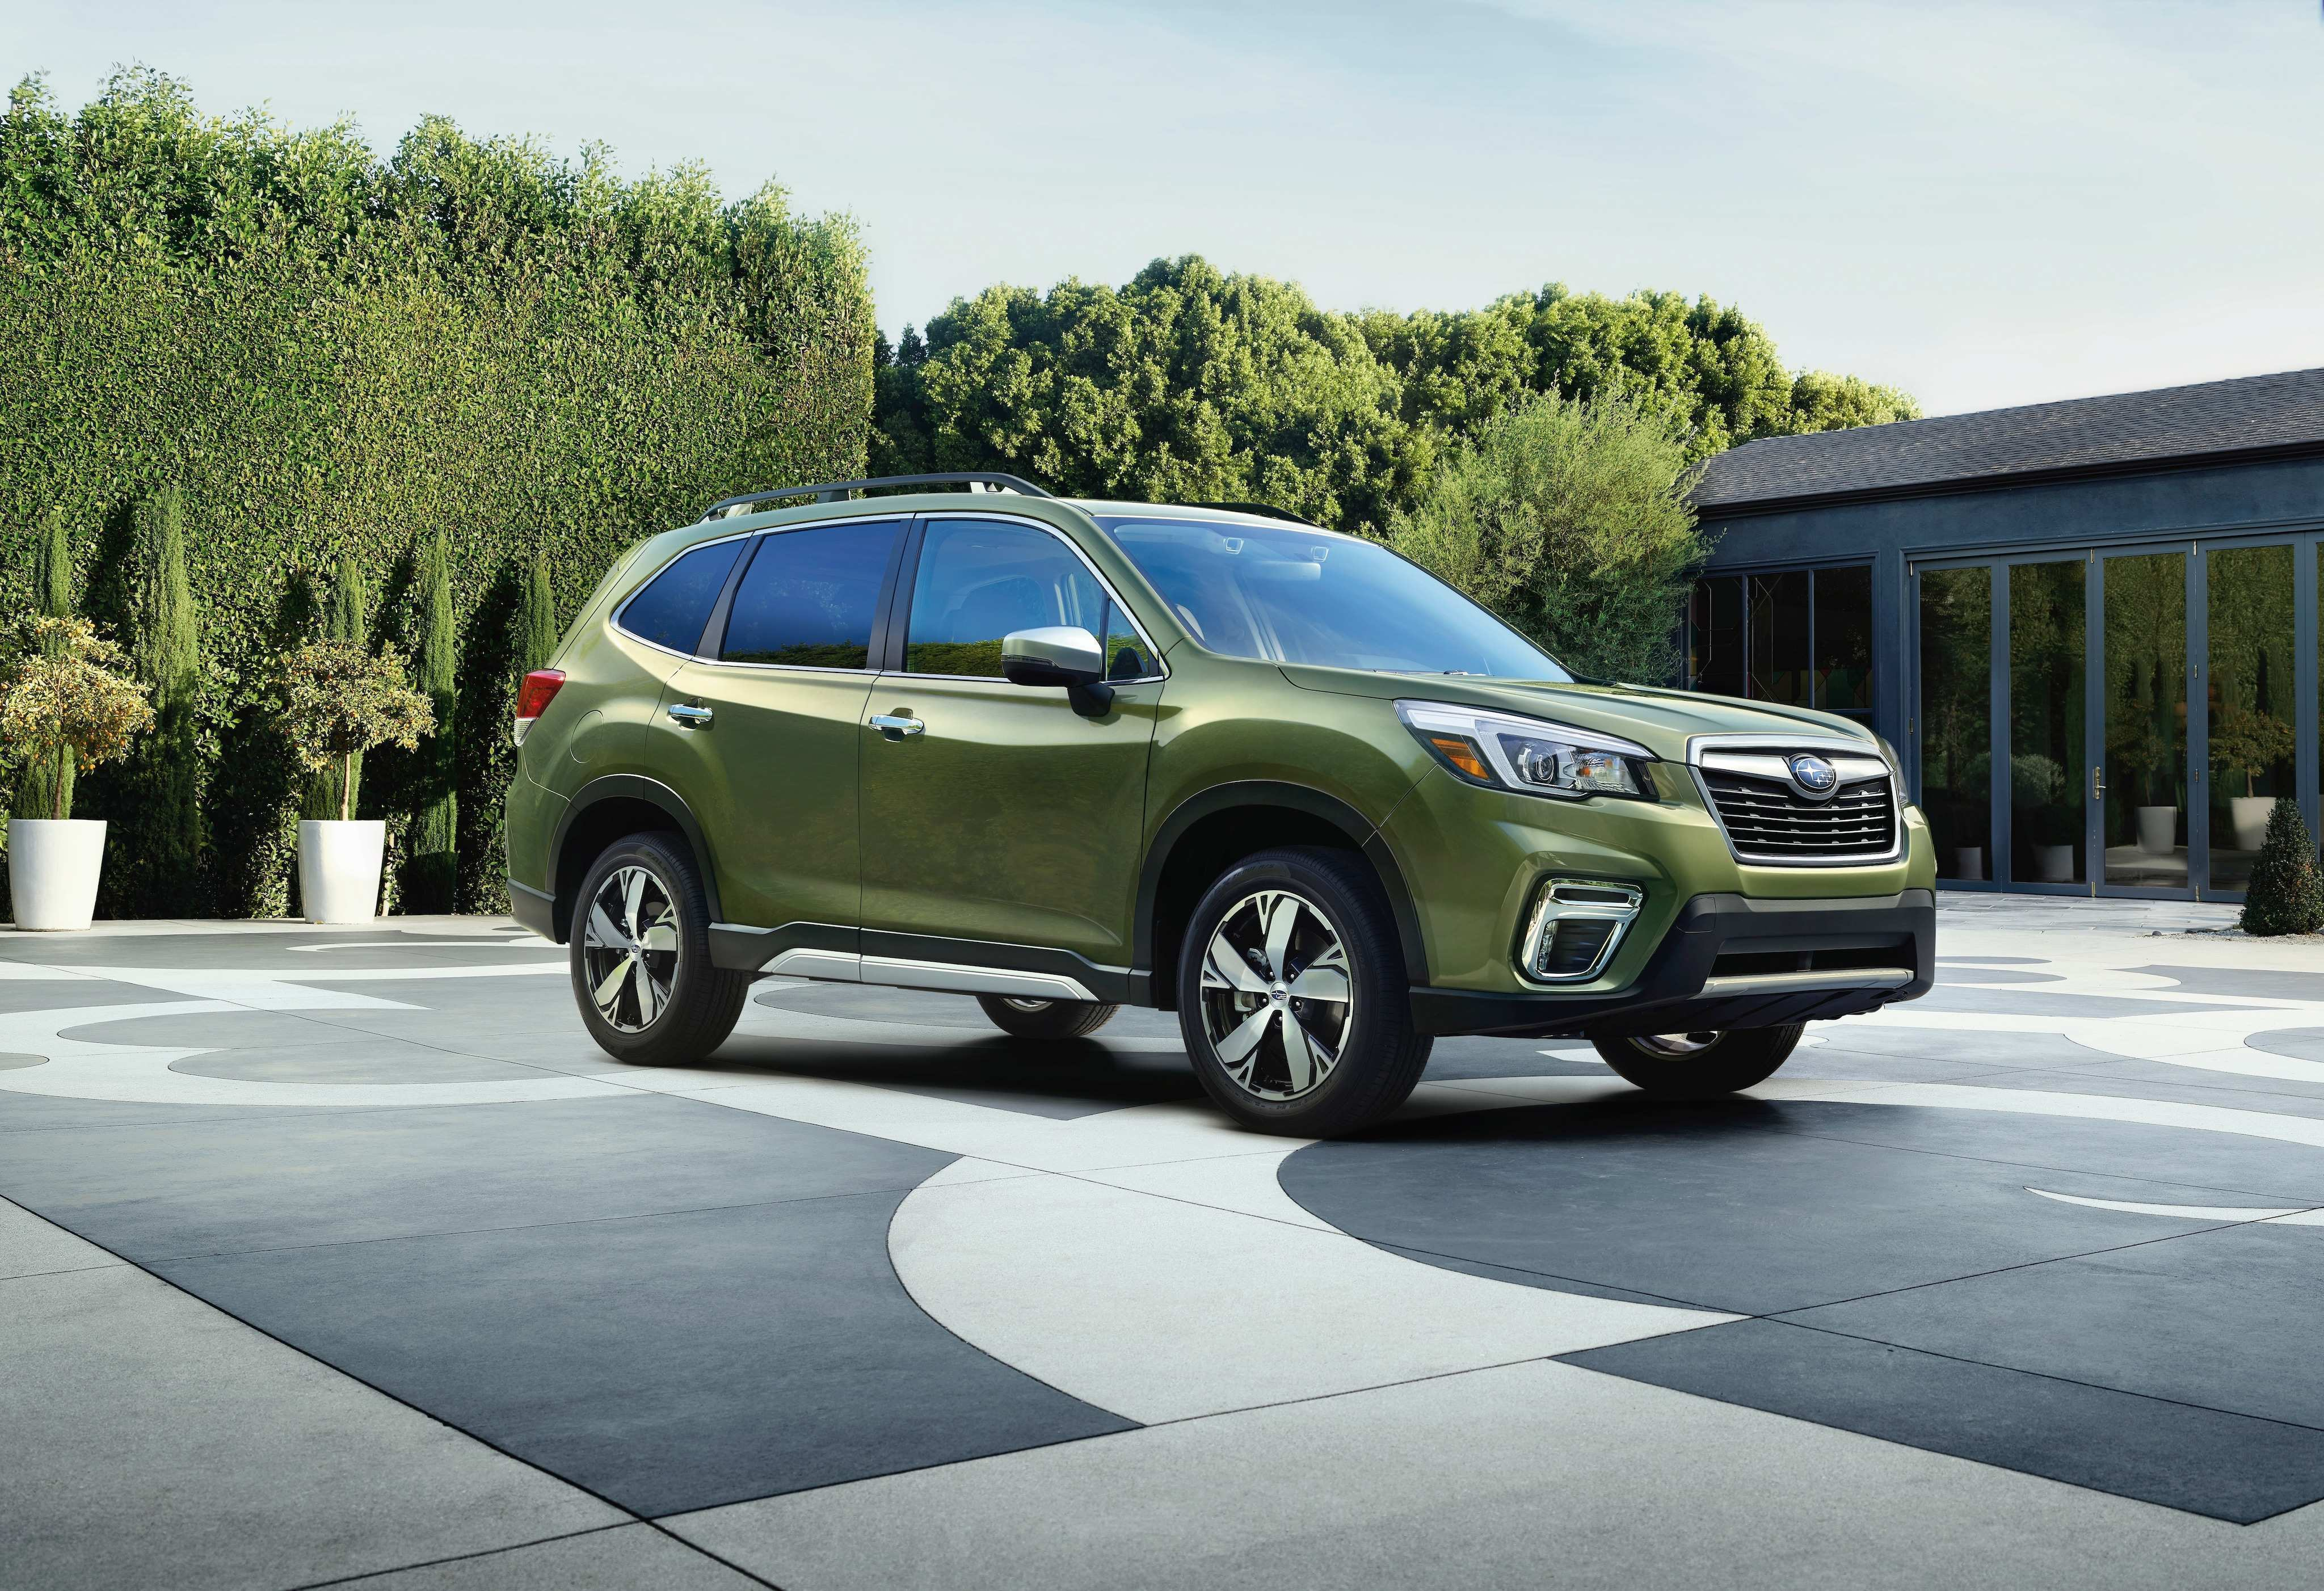 69 New 2019 Subaru Forester Debut Configurations with 2019 Subaru Forester Debut